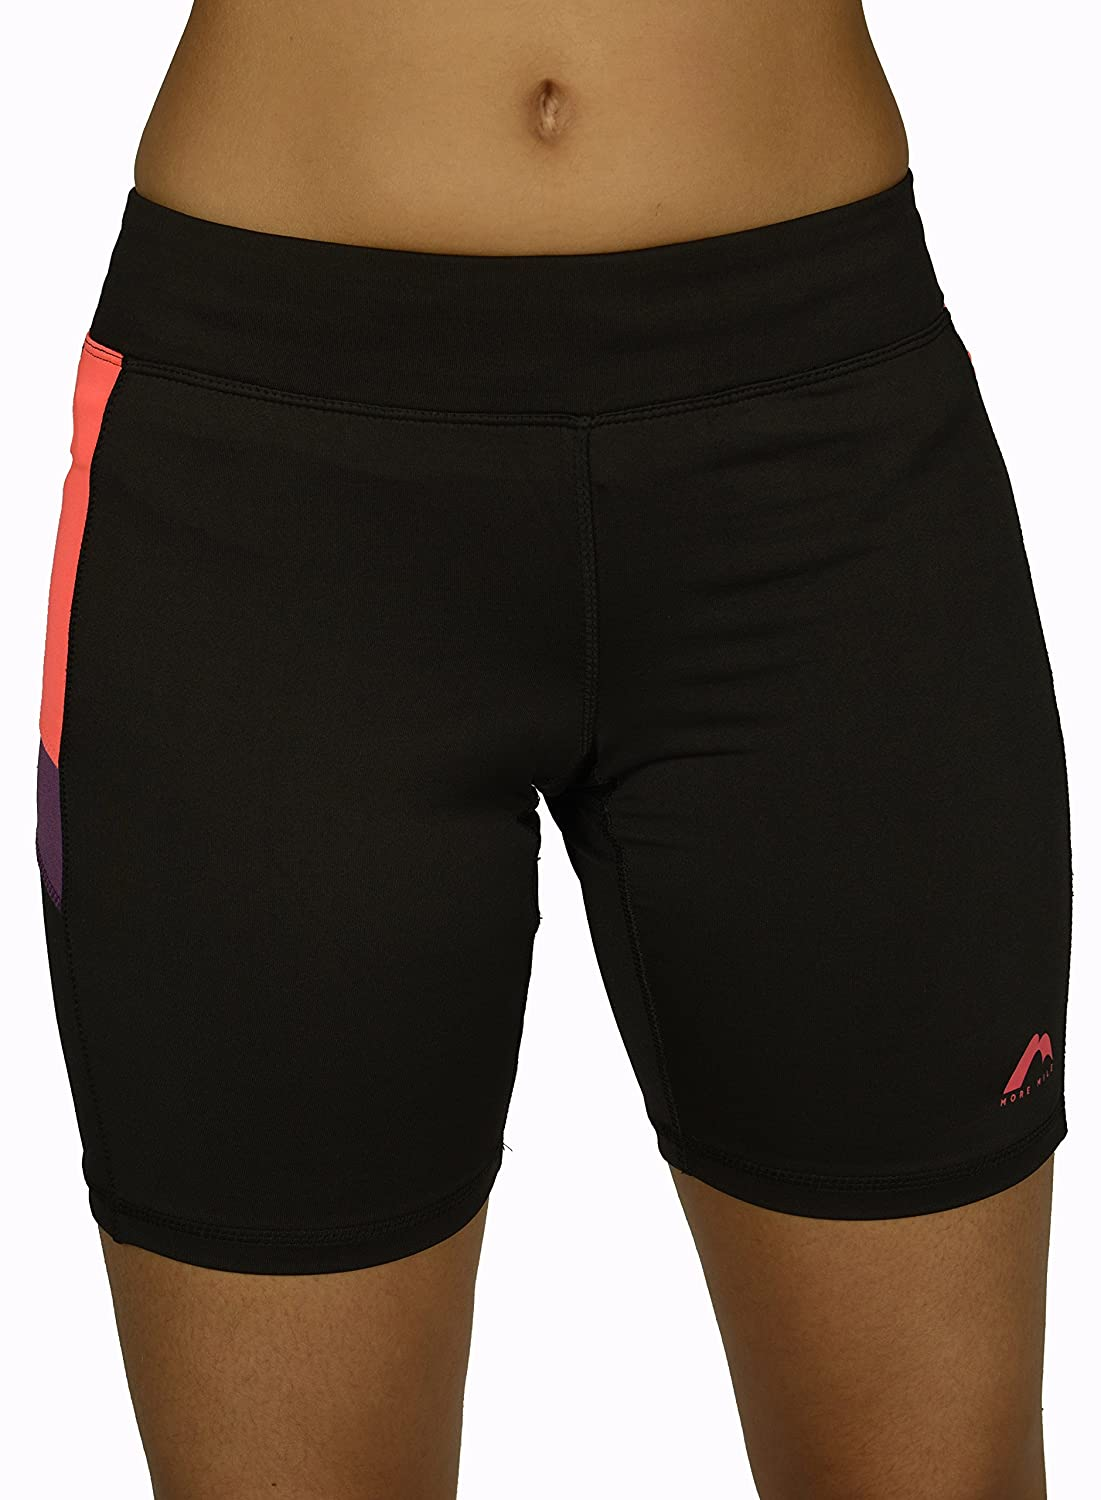 Black More Mile More-Tech Womens Running Tights